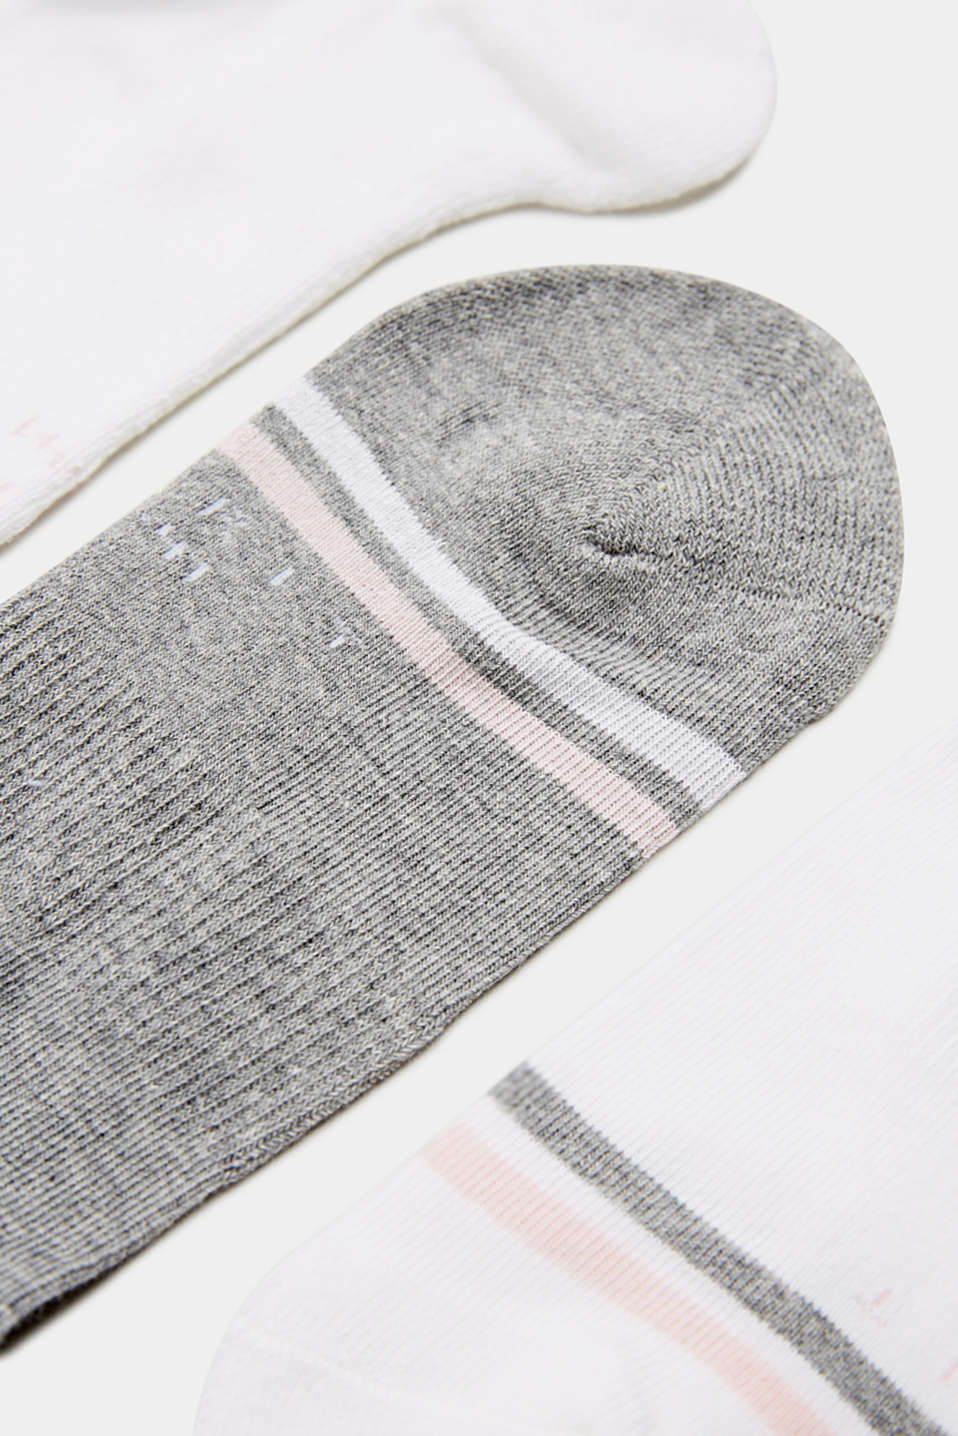 3-pair pack of blended cotton socks, LCSORTIMENT, detail image number 1